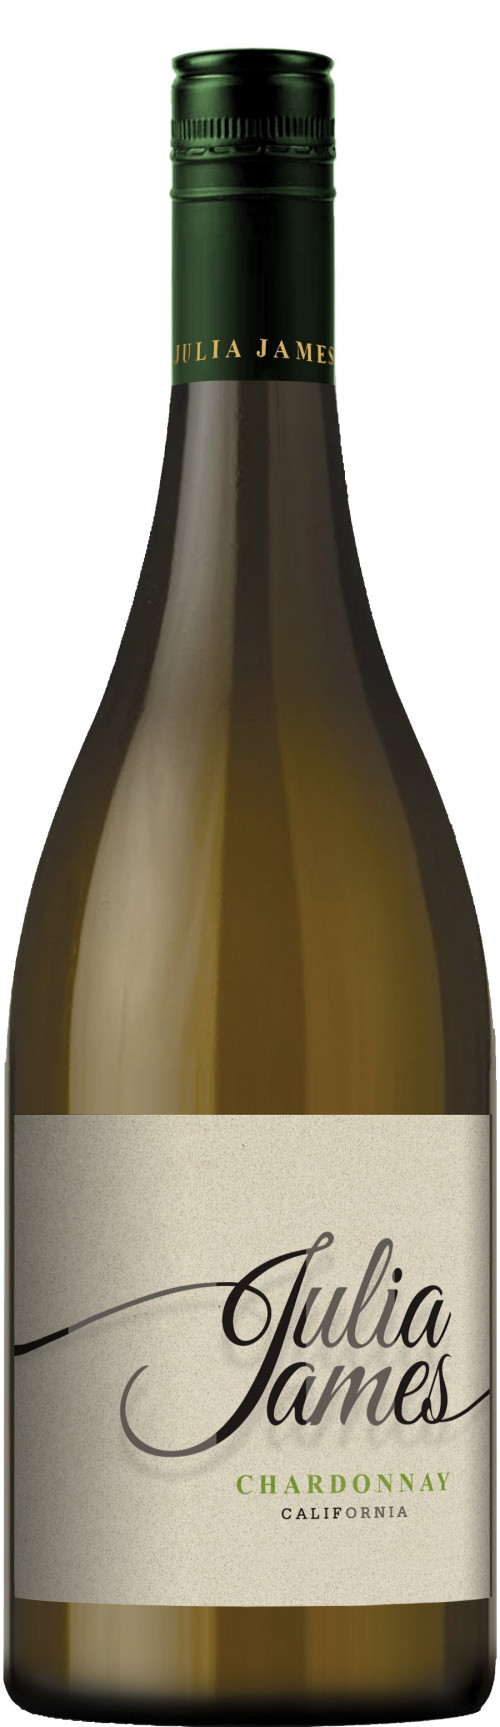 2018 Julia James Chardonnay 750ml